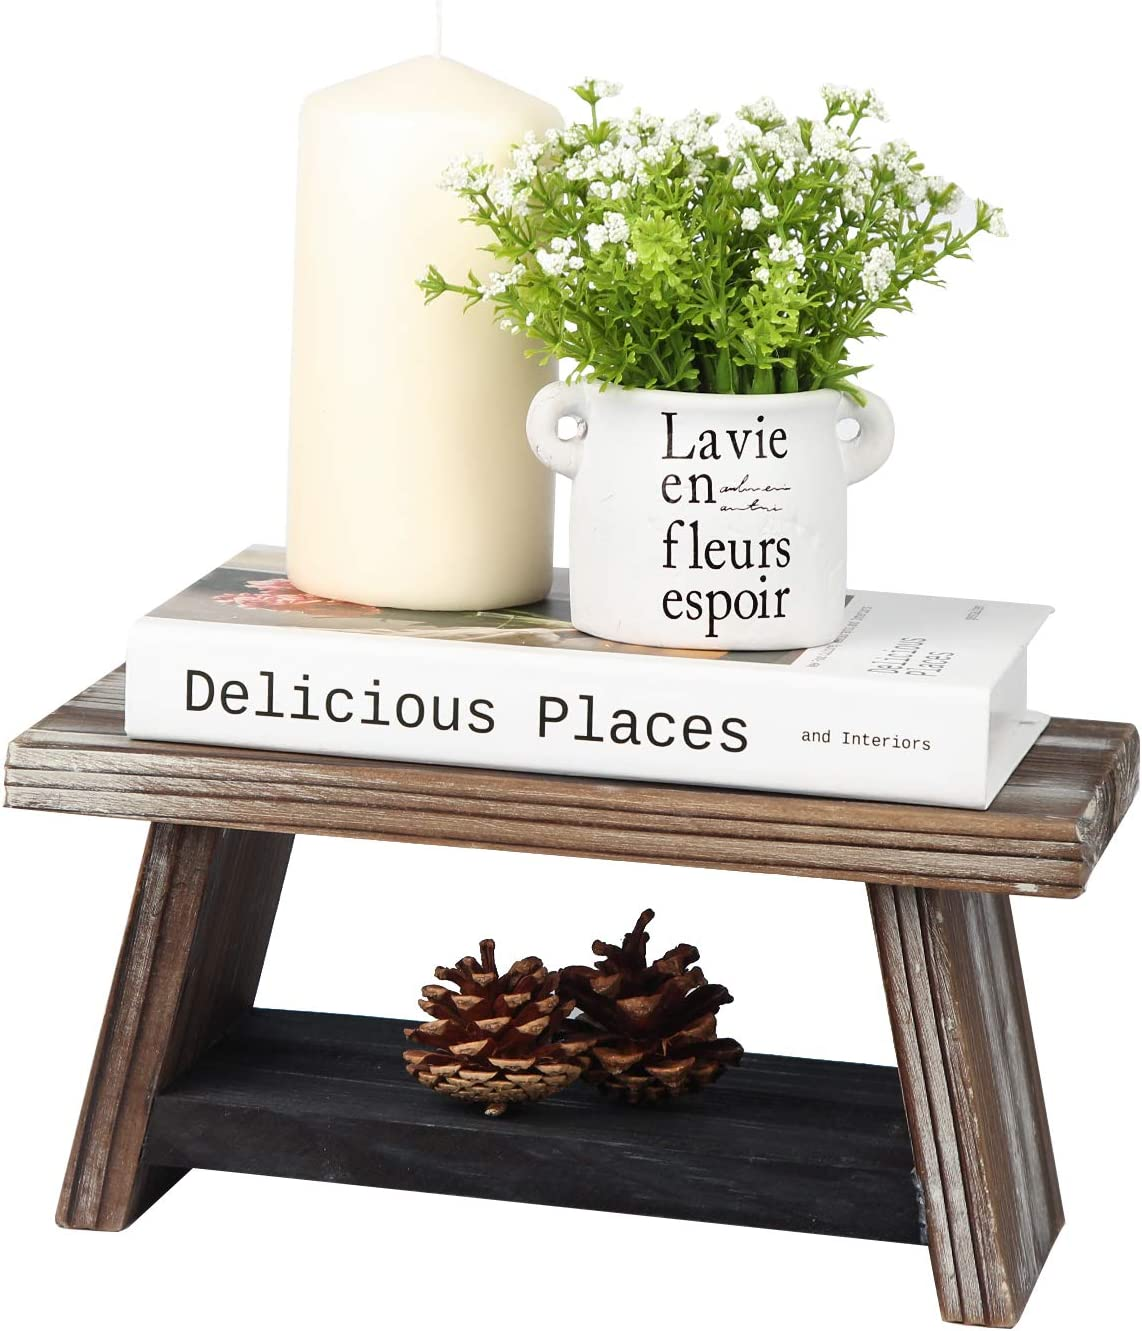 J JACKCUBE DESIGN - Rustic Wood Display Stand 2 Tier Wooden Pedestal Platter for Plant Food Dessert Decorative Crates for Table Small Centerpiece Organizer - MK593A